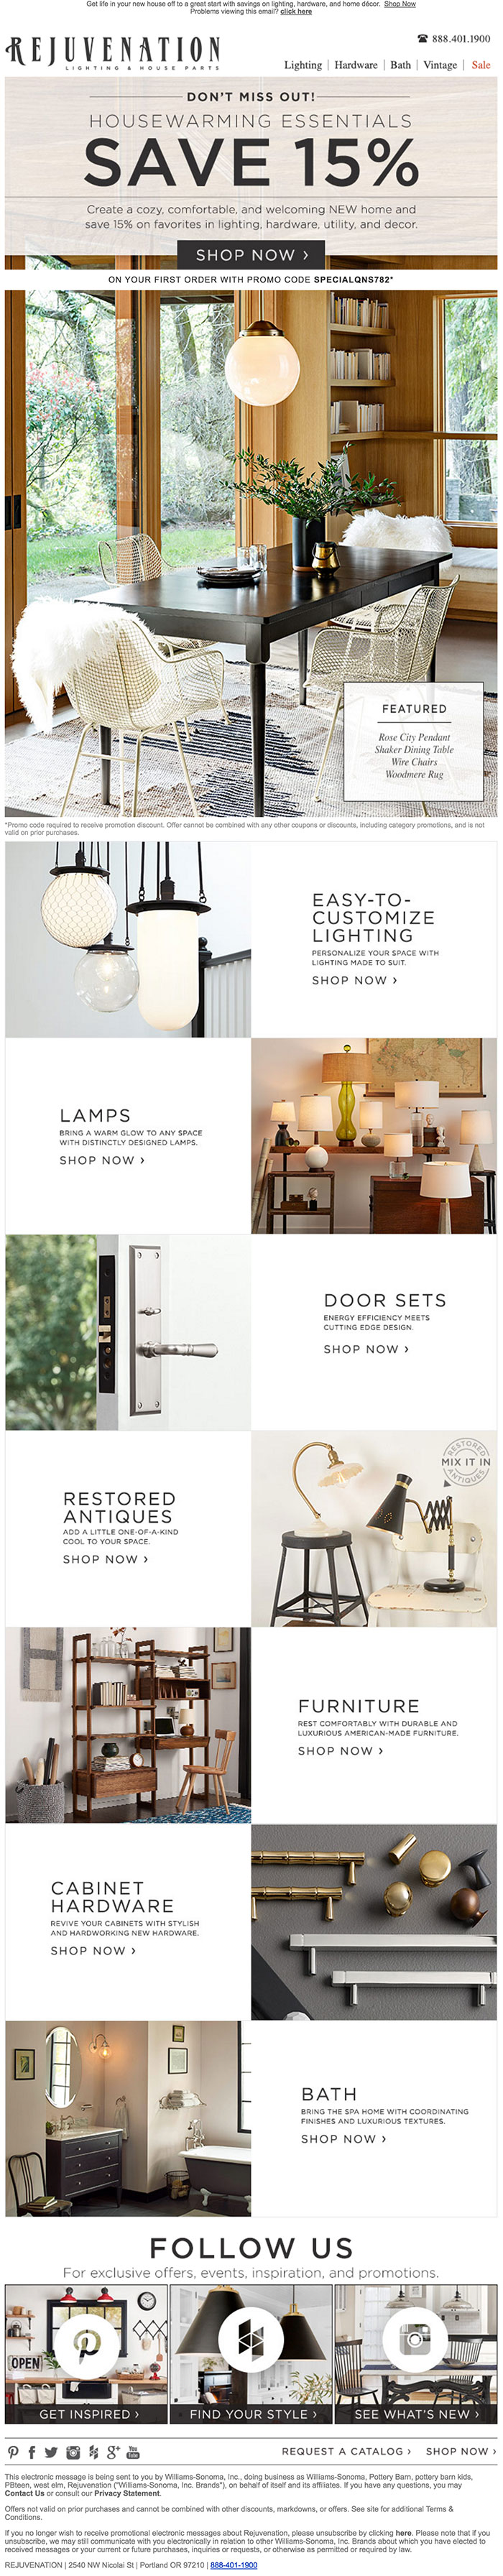 Rejuvenation Homegoods Email design example